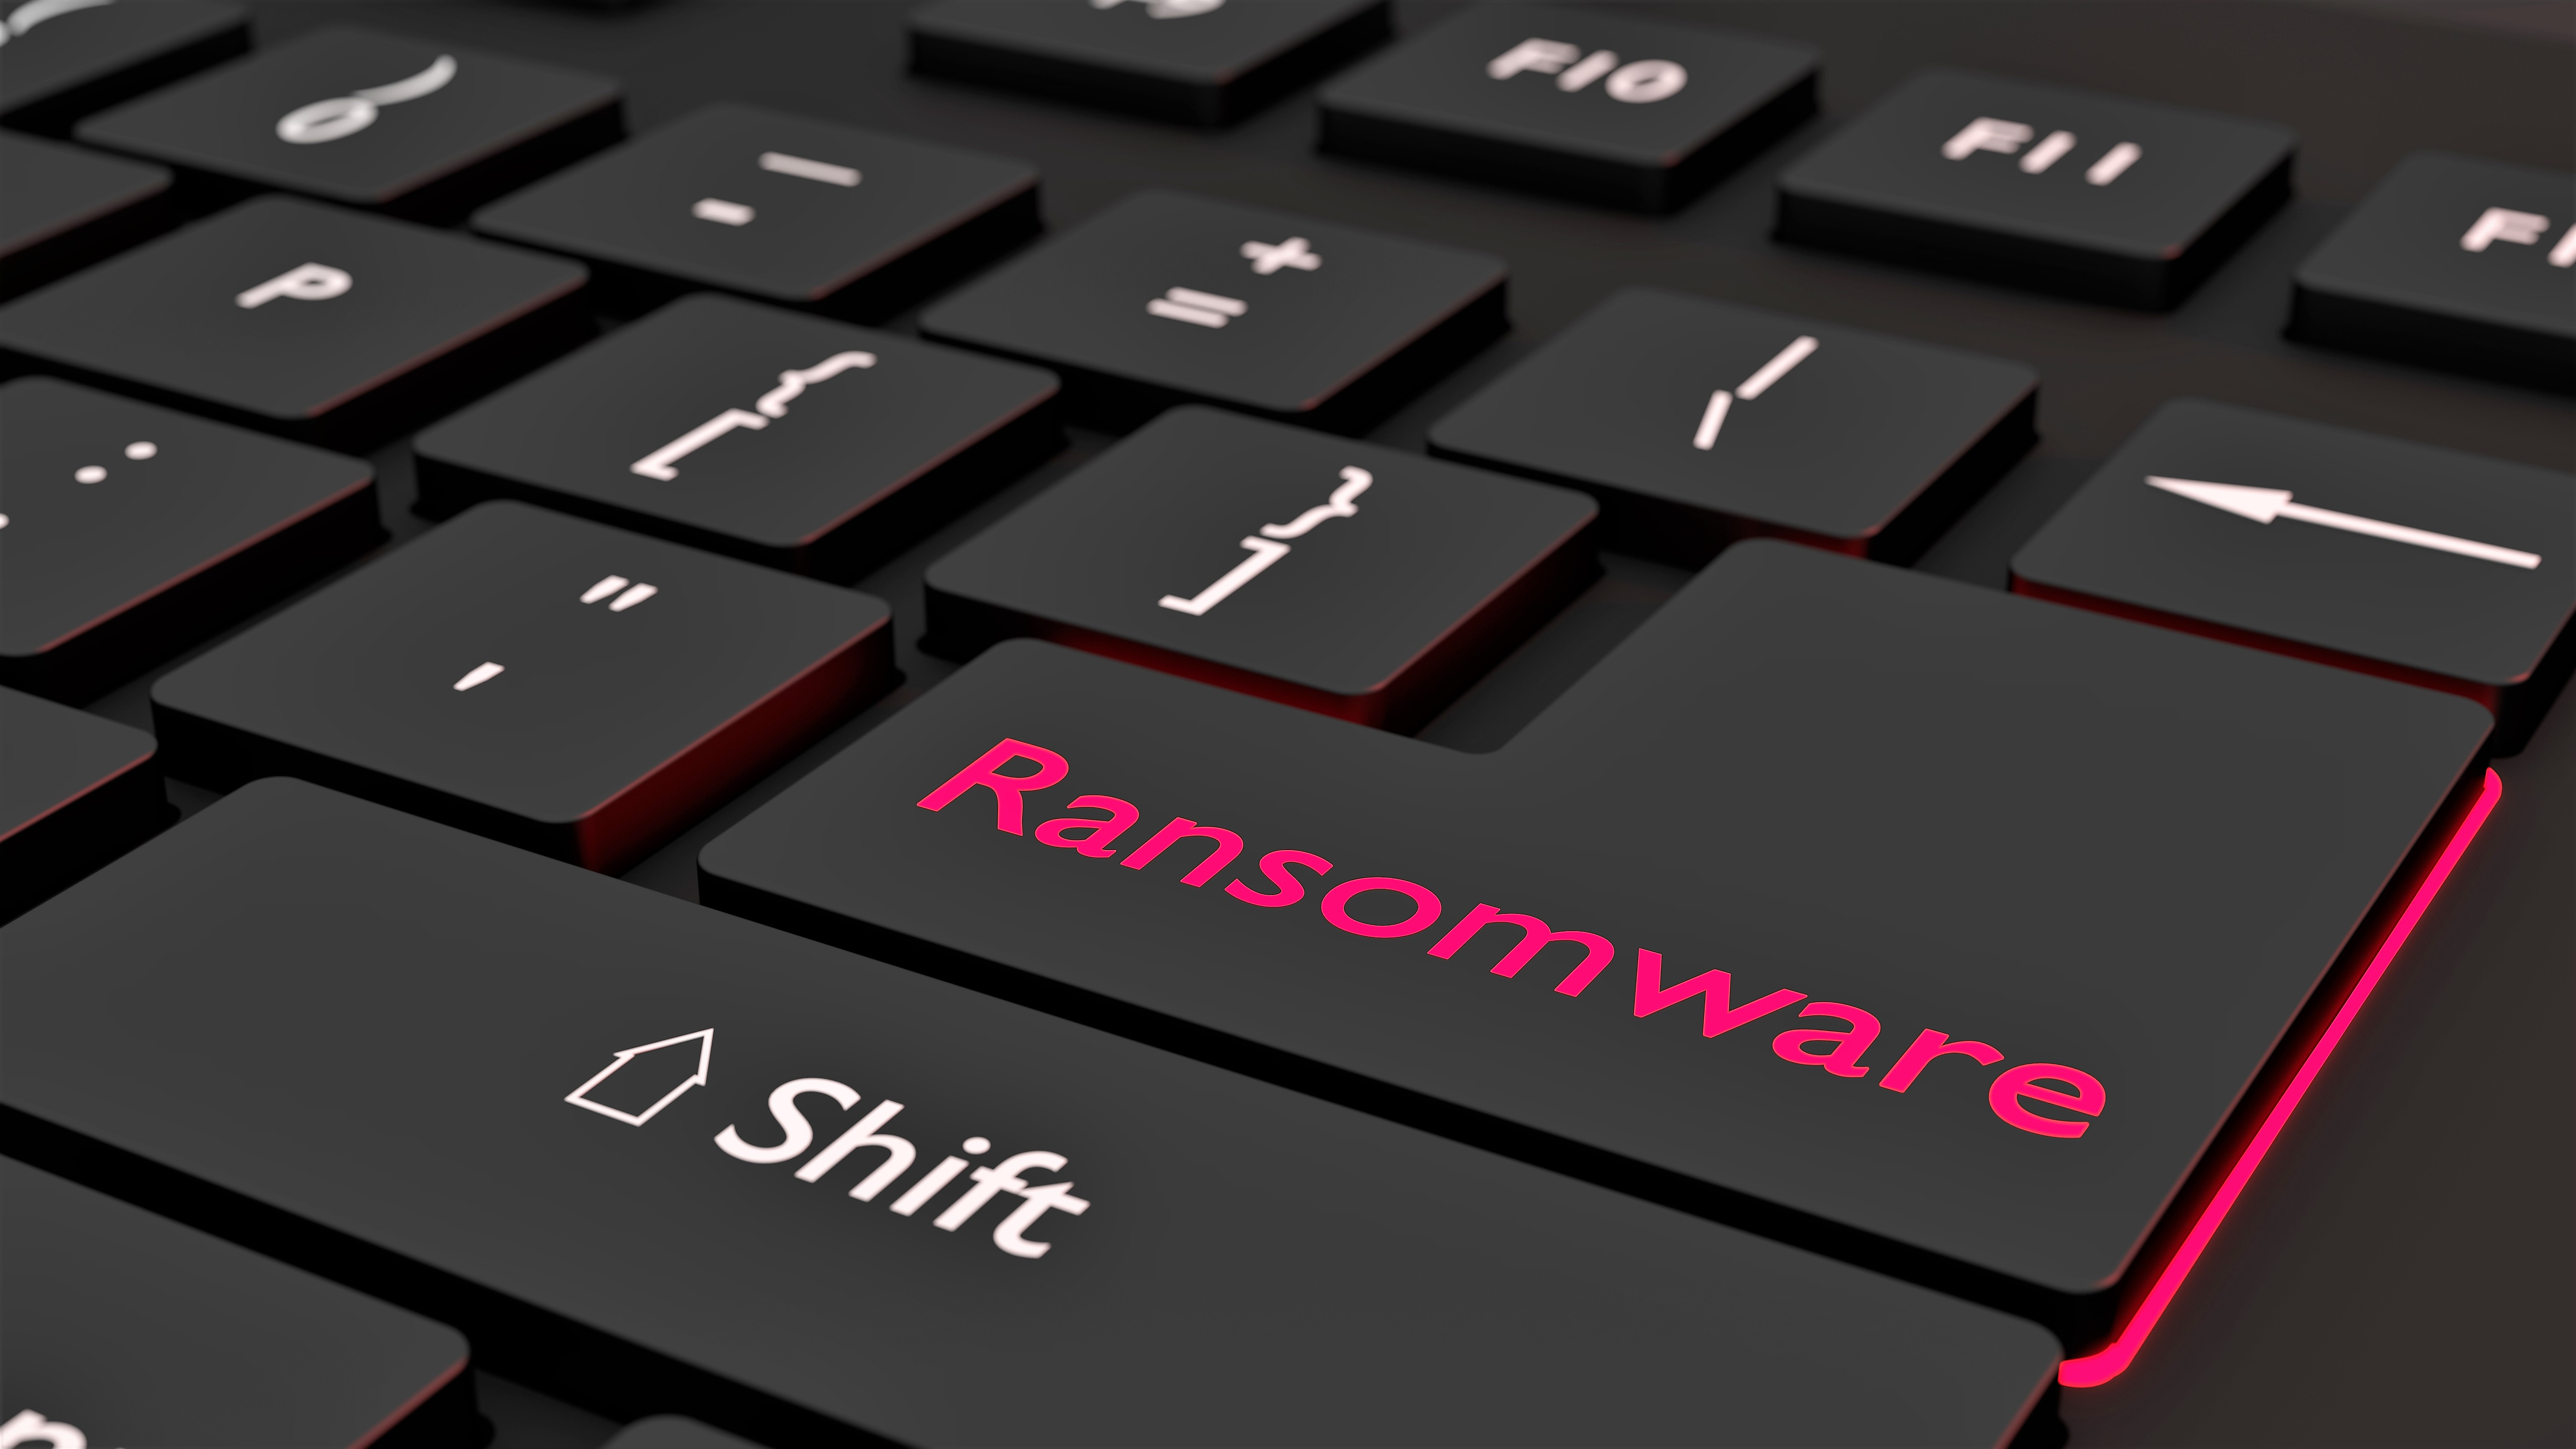 Black ransomware keyboard cybersecurity concept